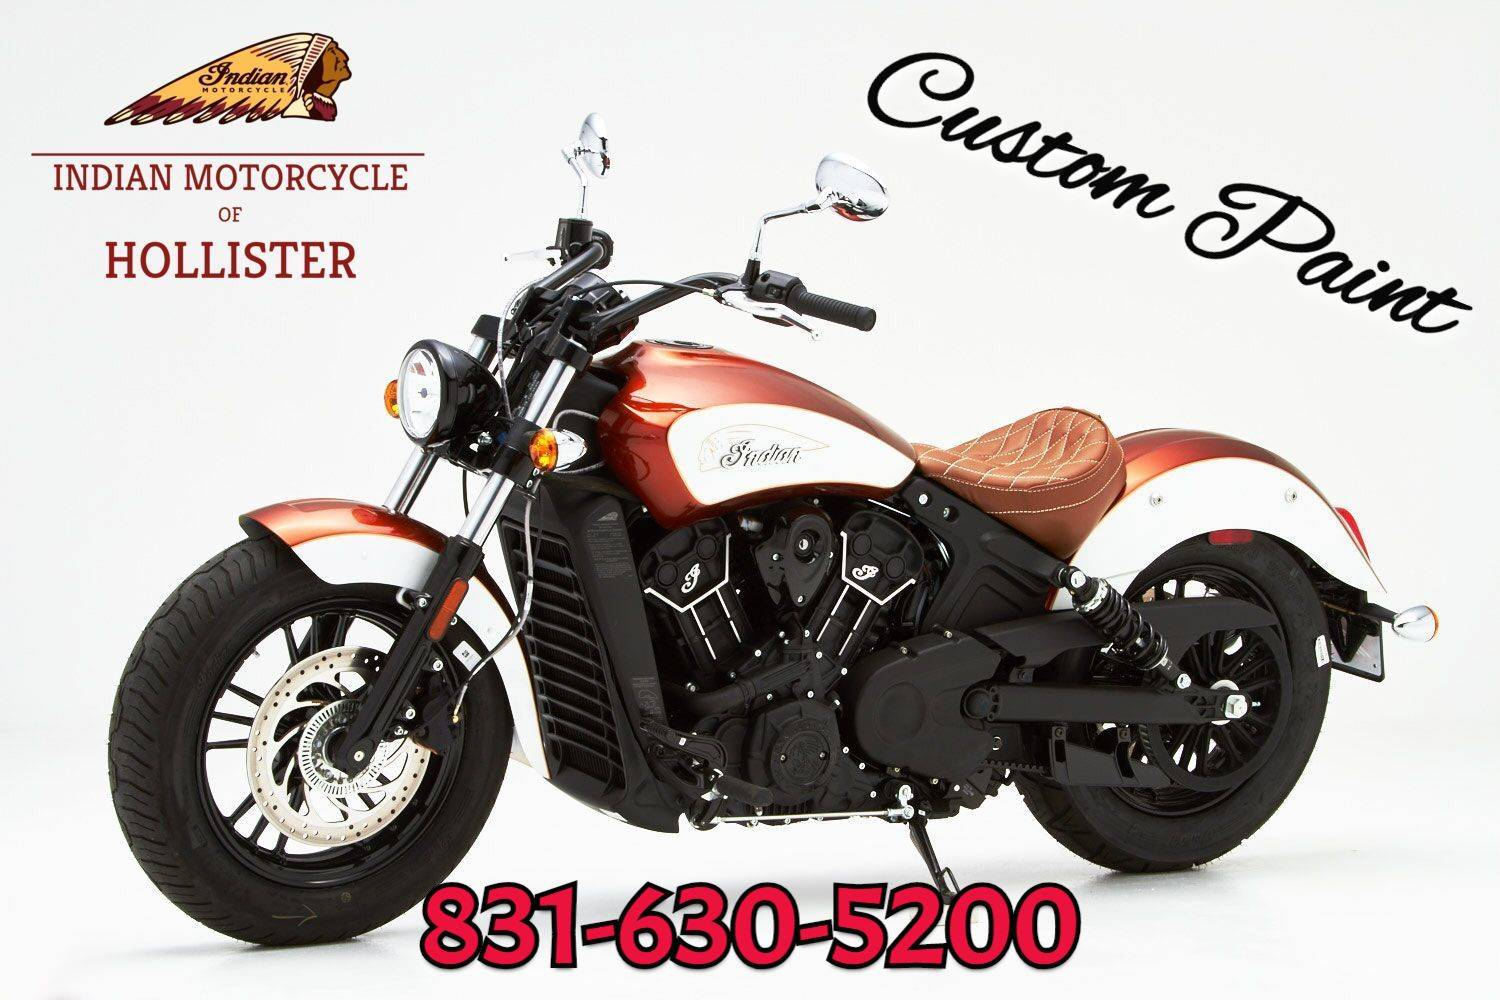 2018 Indian Scout Sixty ABS 3